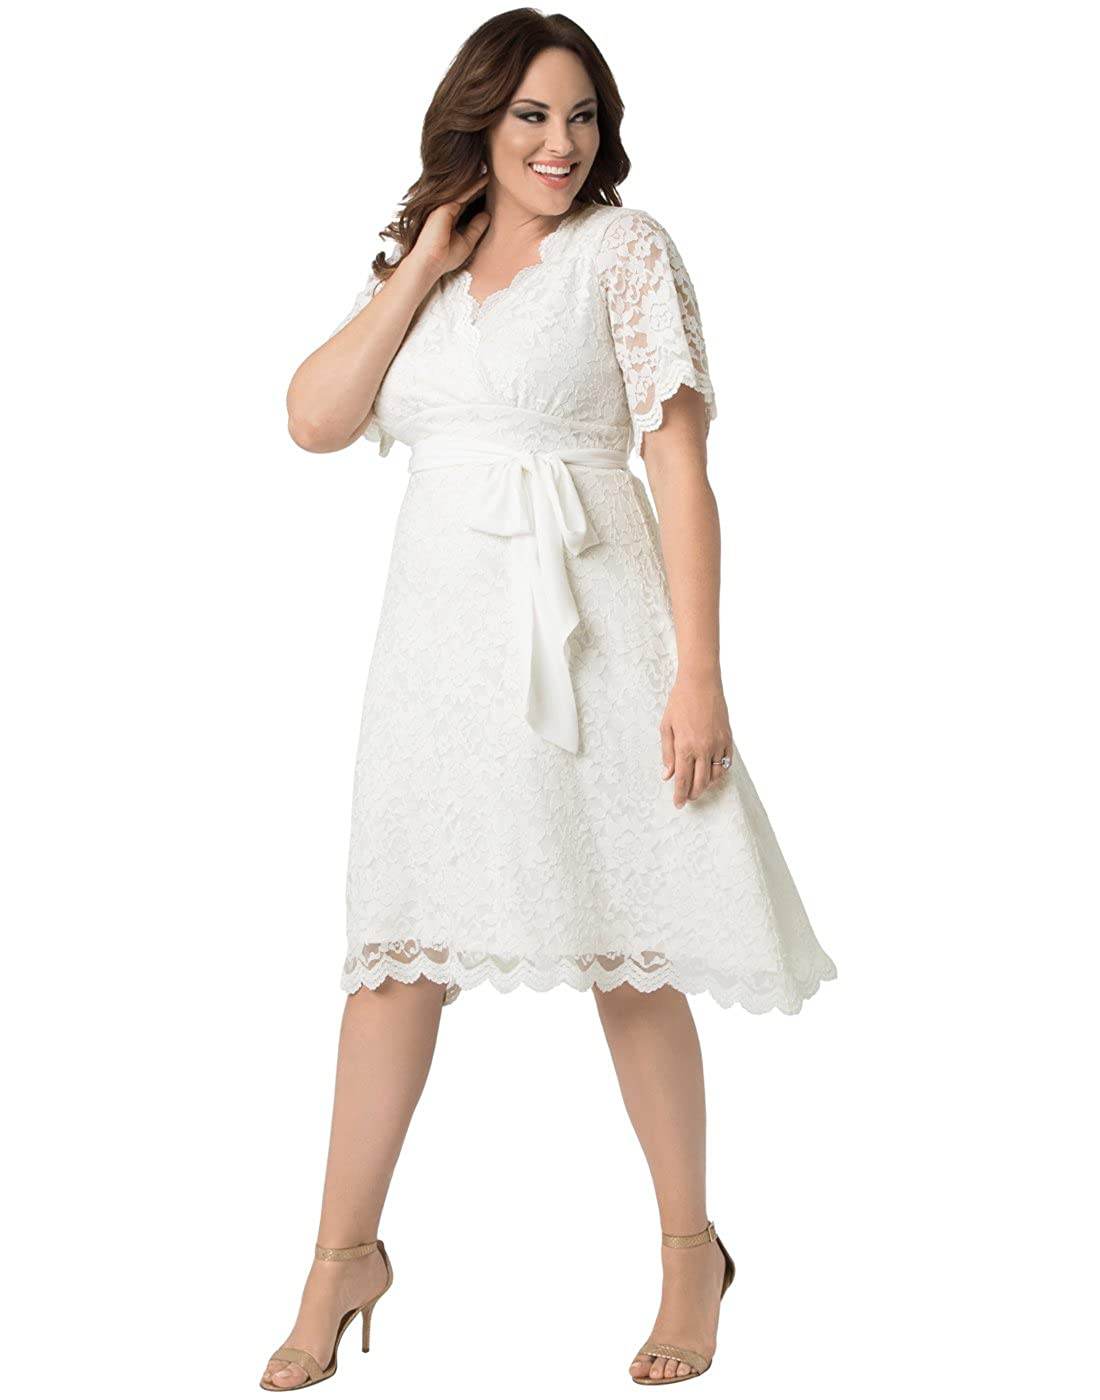 Retro inspired with a flattering empire waist and A-line skirt. Perfect for  the simple and sassy bride. Features scalloped lace edges 8e8b818ca